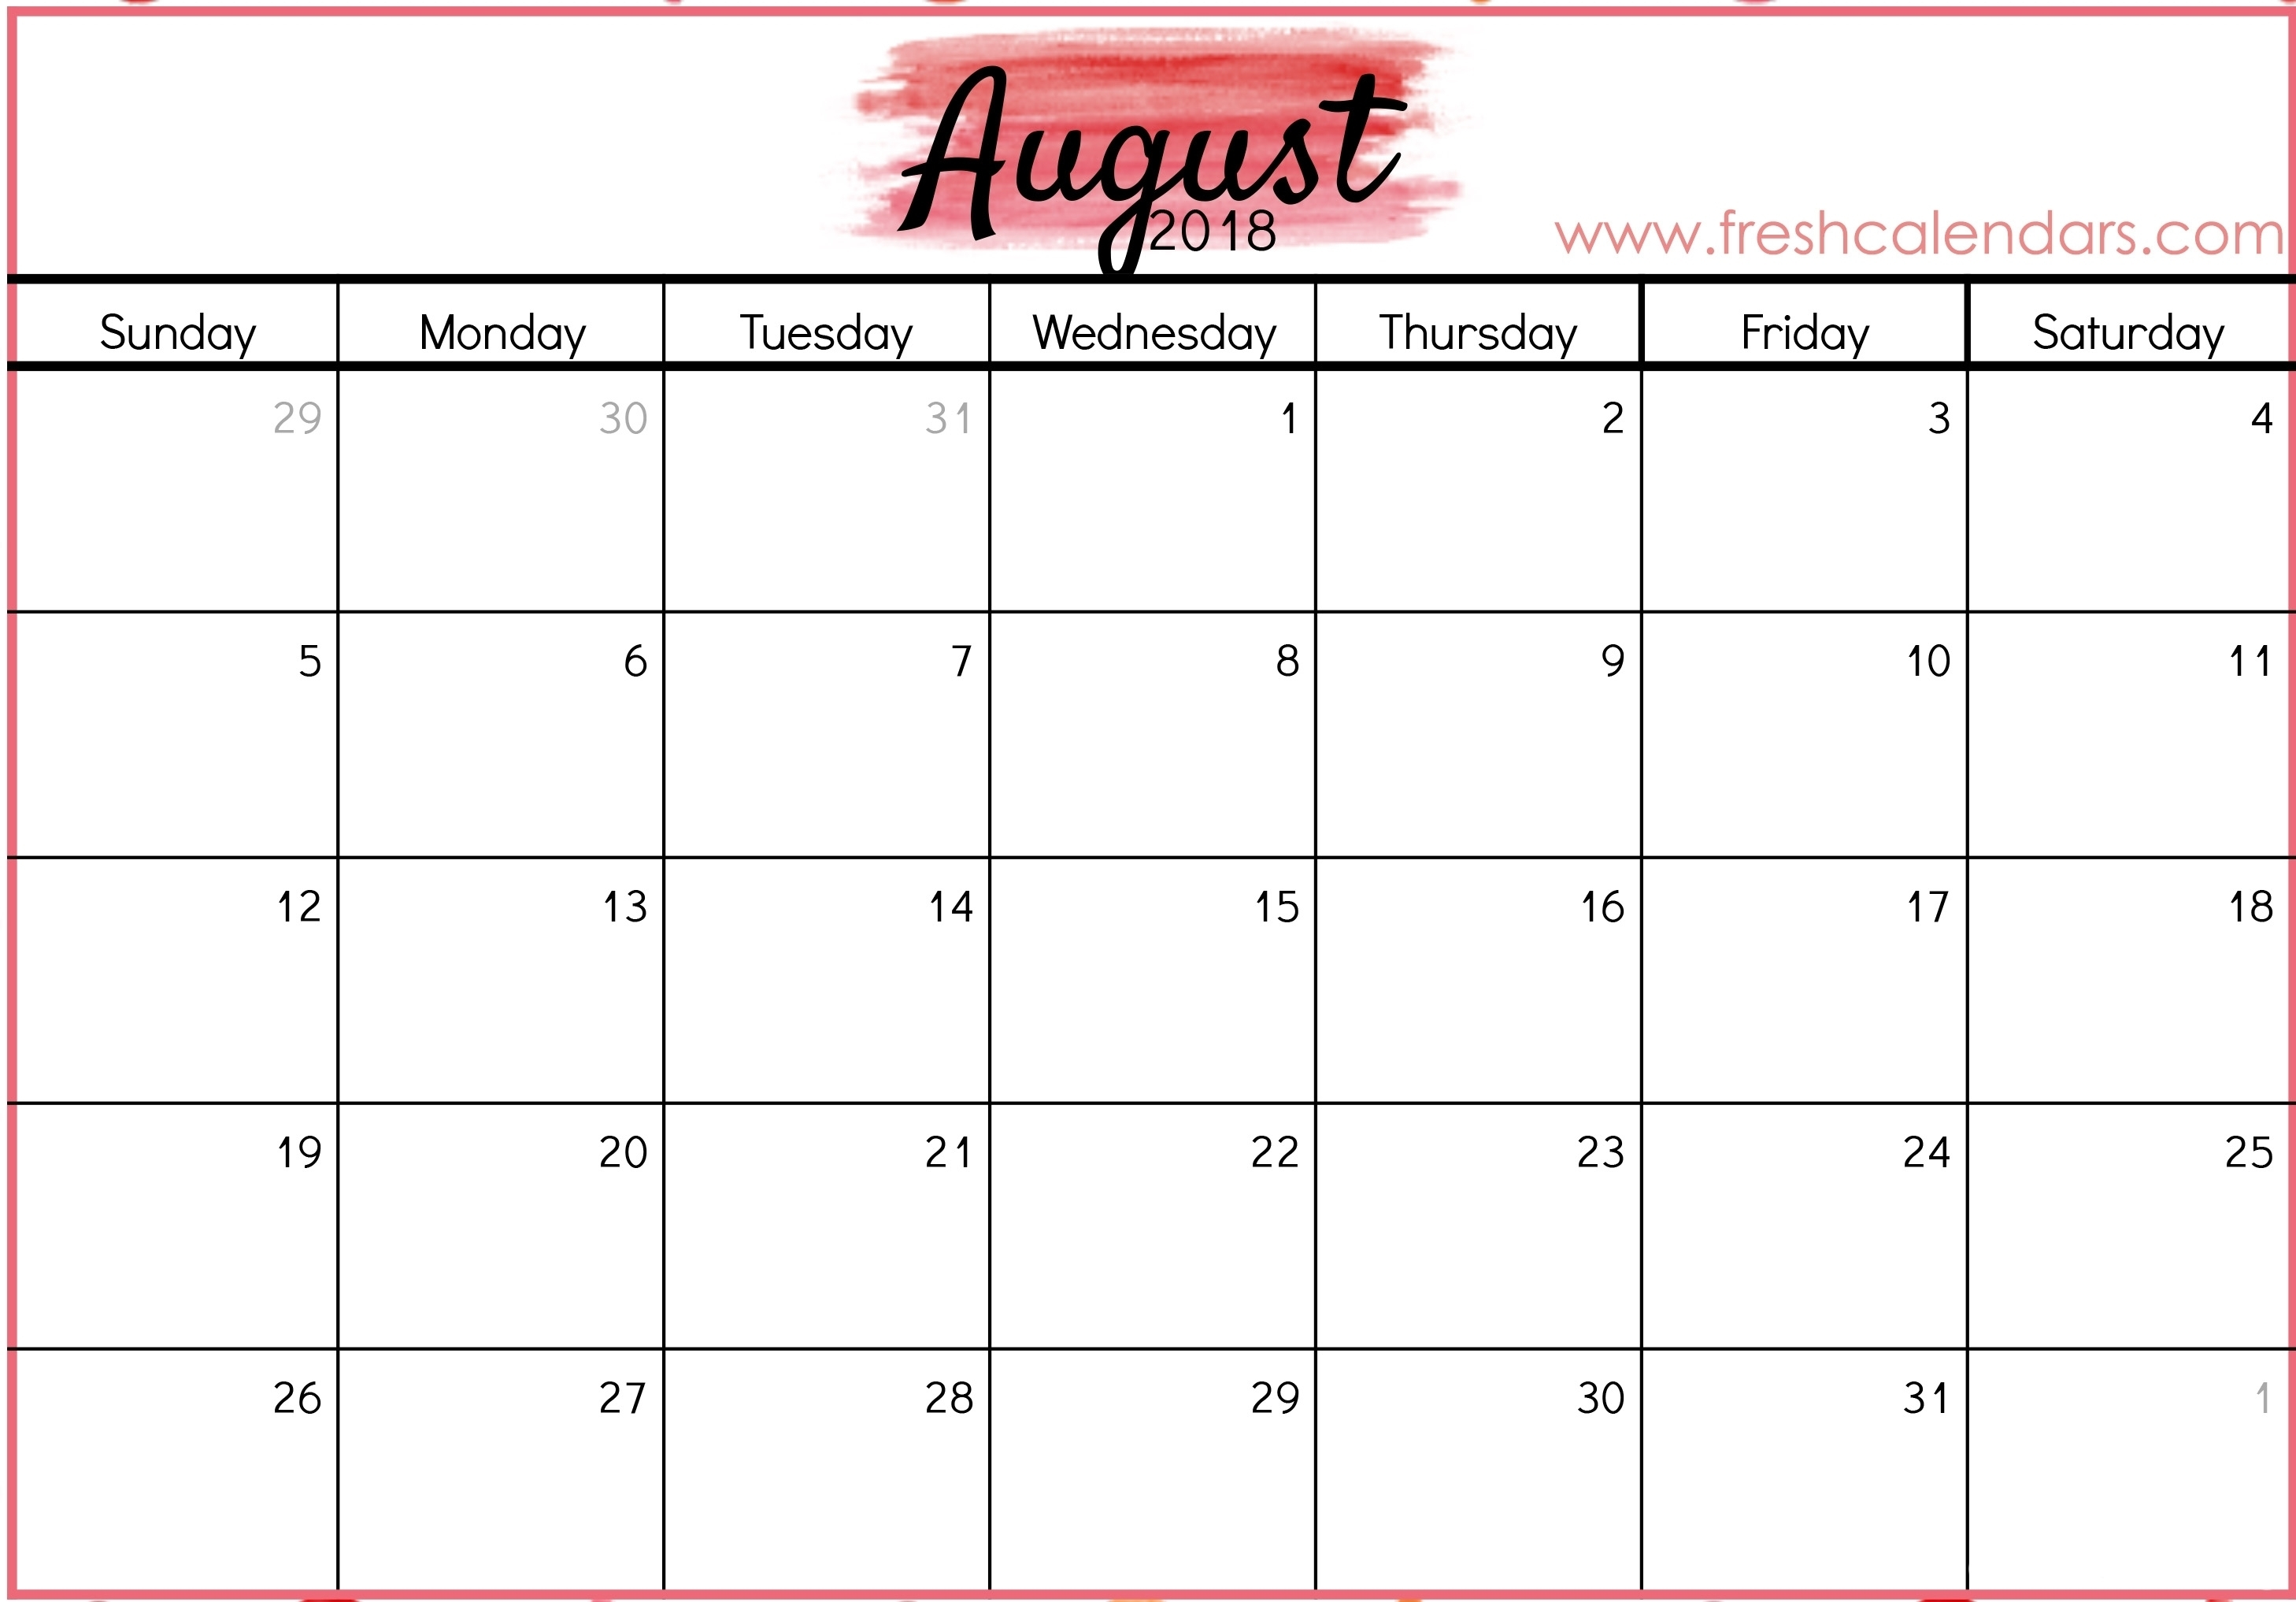 August 29 Hourly Schedule Template | Template Calendar Printable with August 29 Hourly Schedule Template